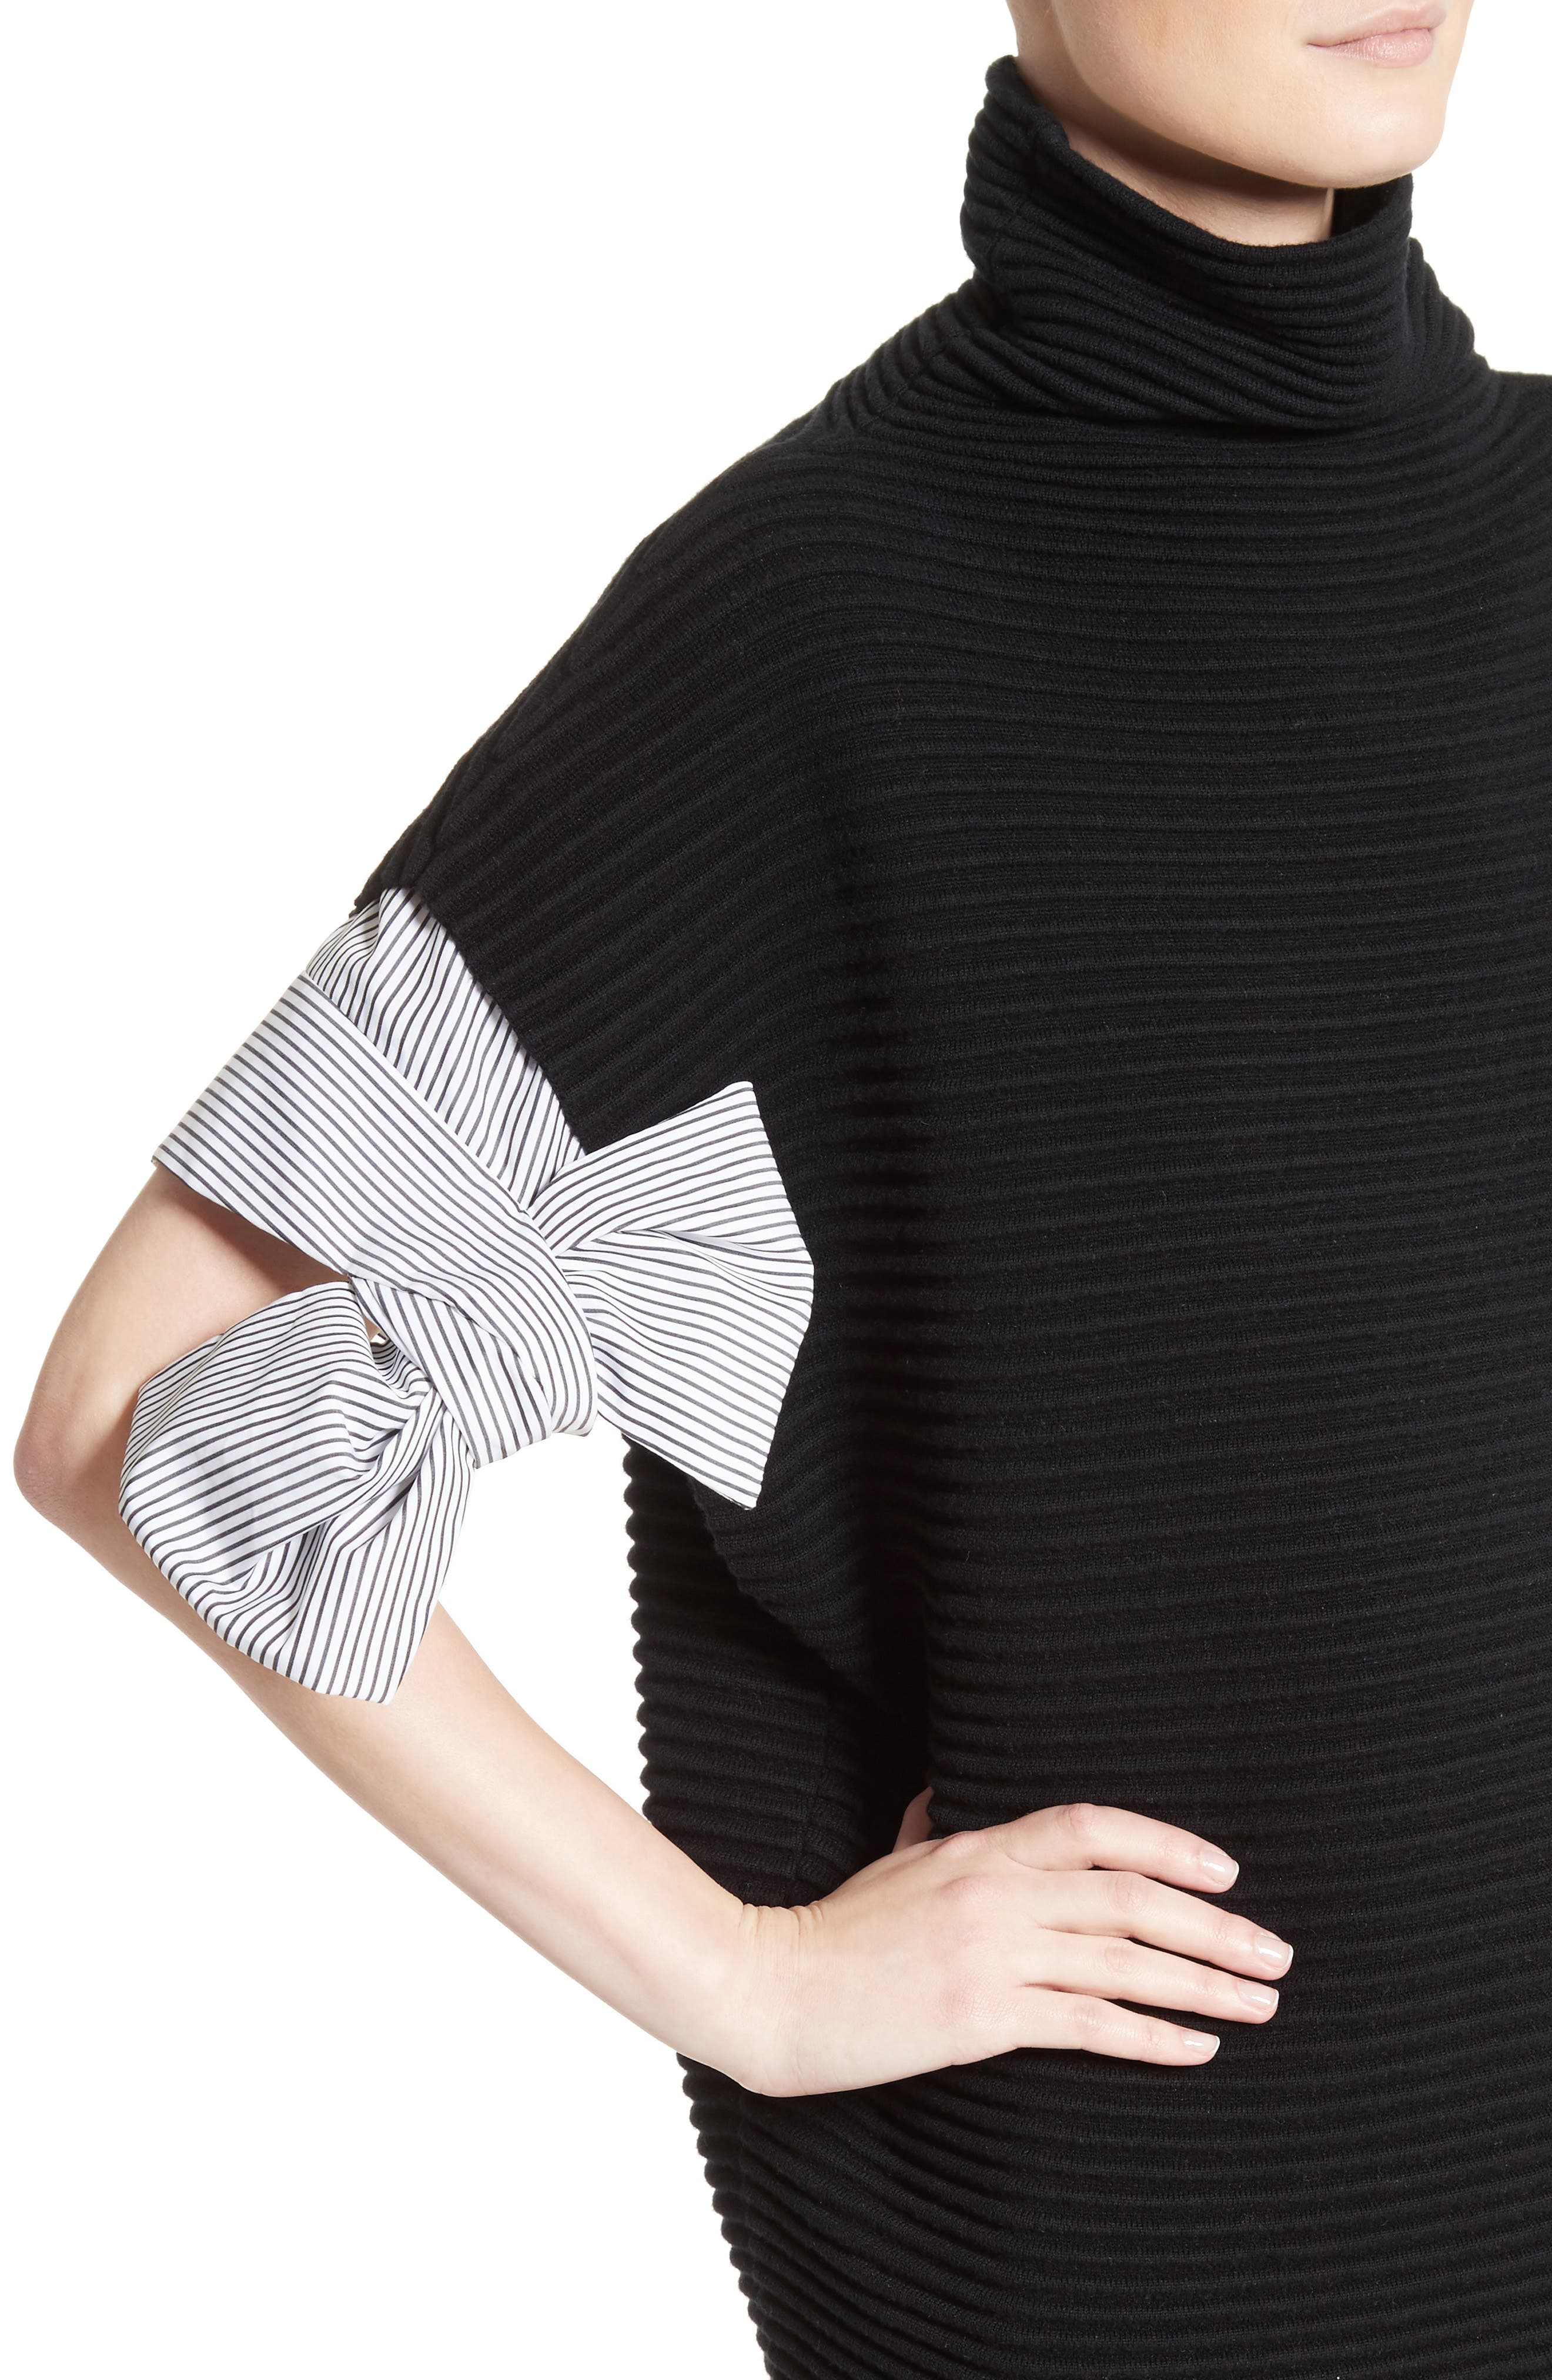 Bow Sleeve Funnel Neck Sweater,                             Alternate thumbnail 4, color,                             001